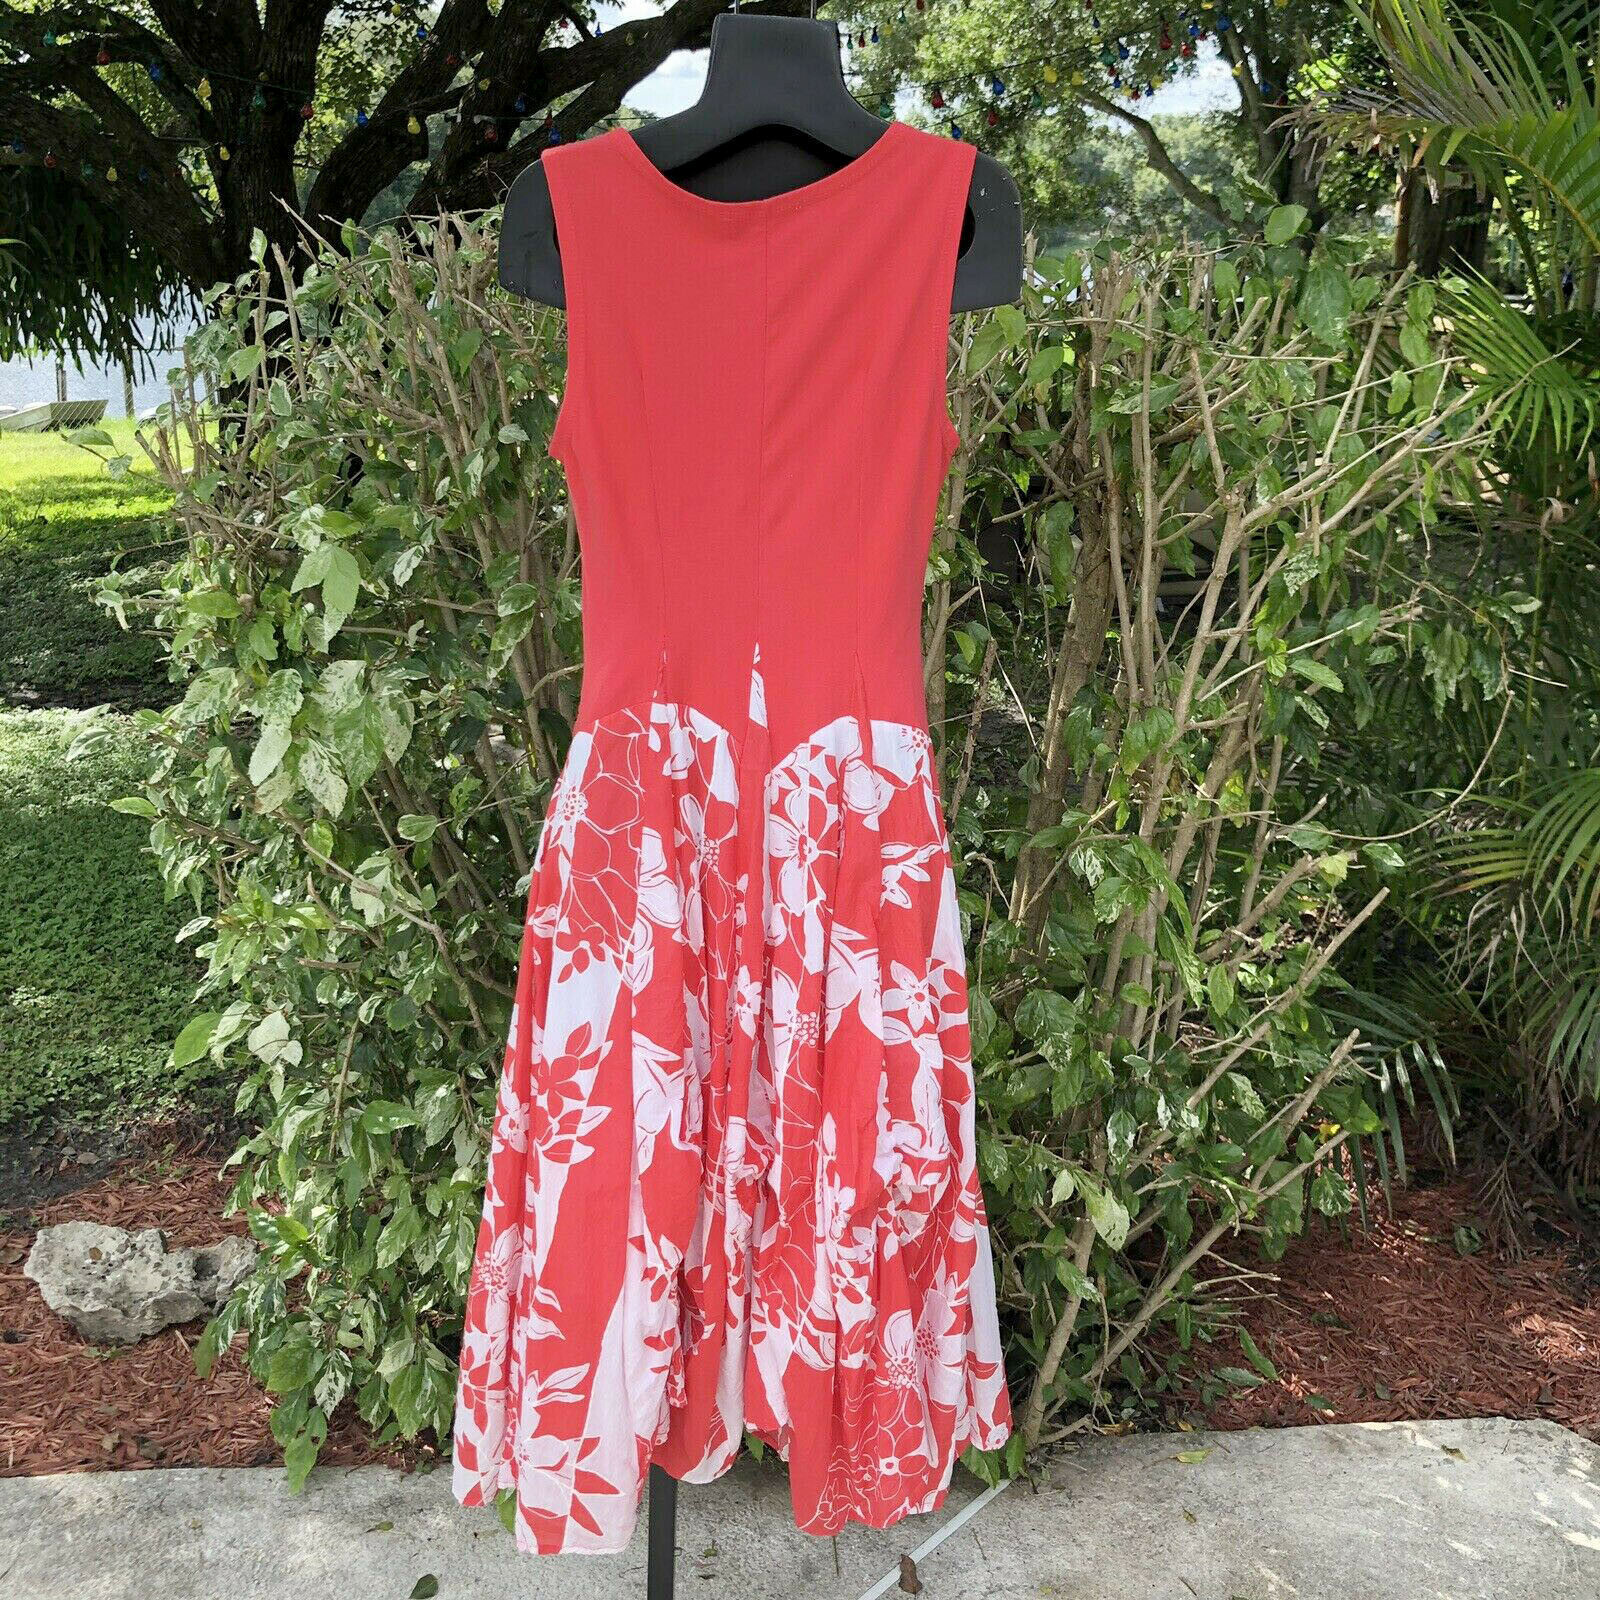 Vasna Desire Sleeveless Fit Flare Dress Size Small Coral White Floral Hawaiian image 4